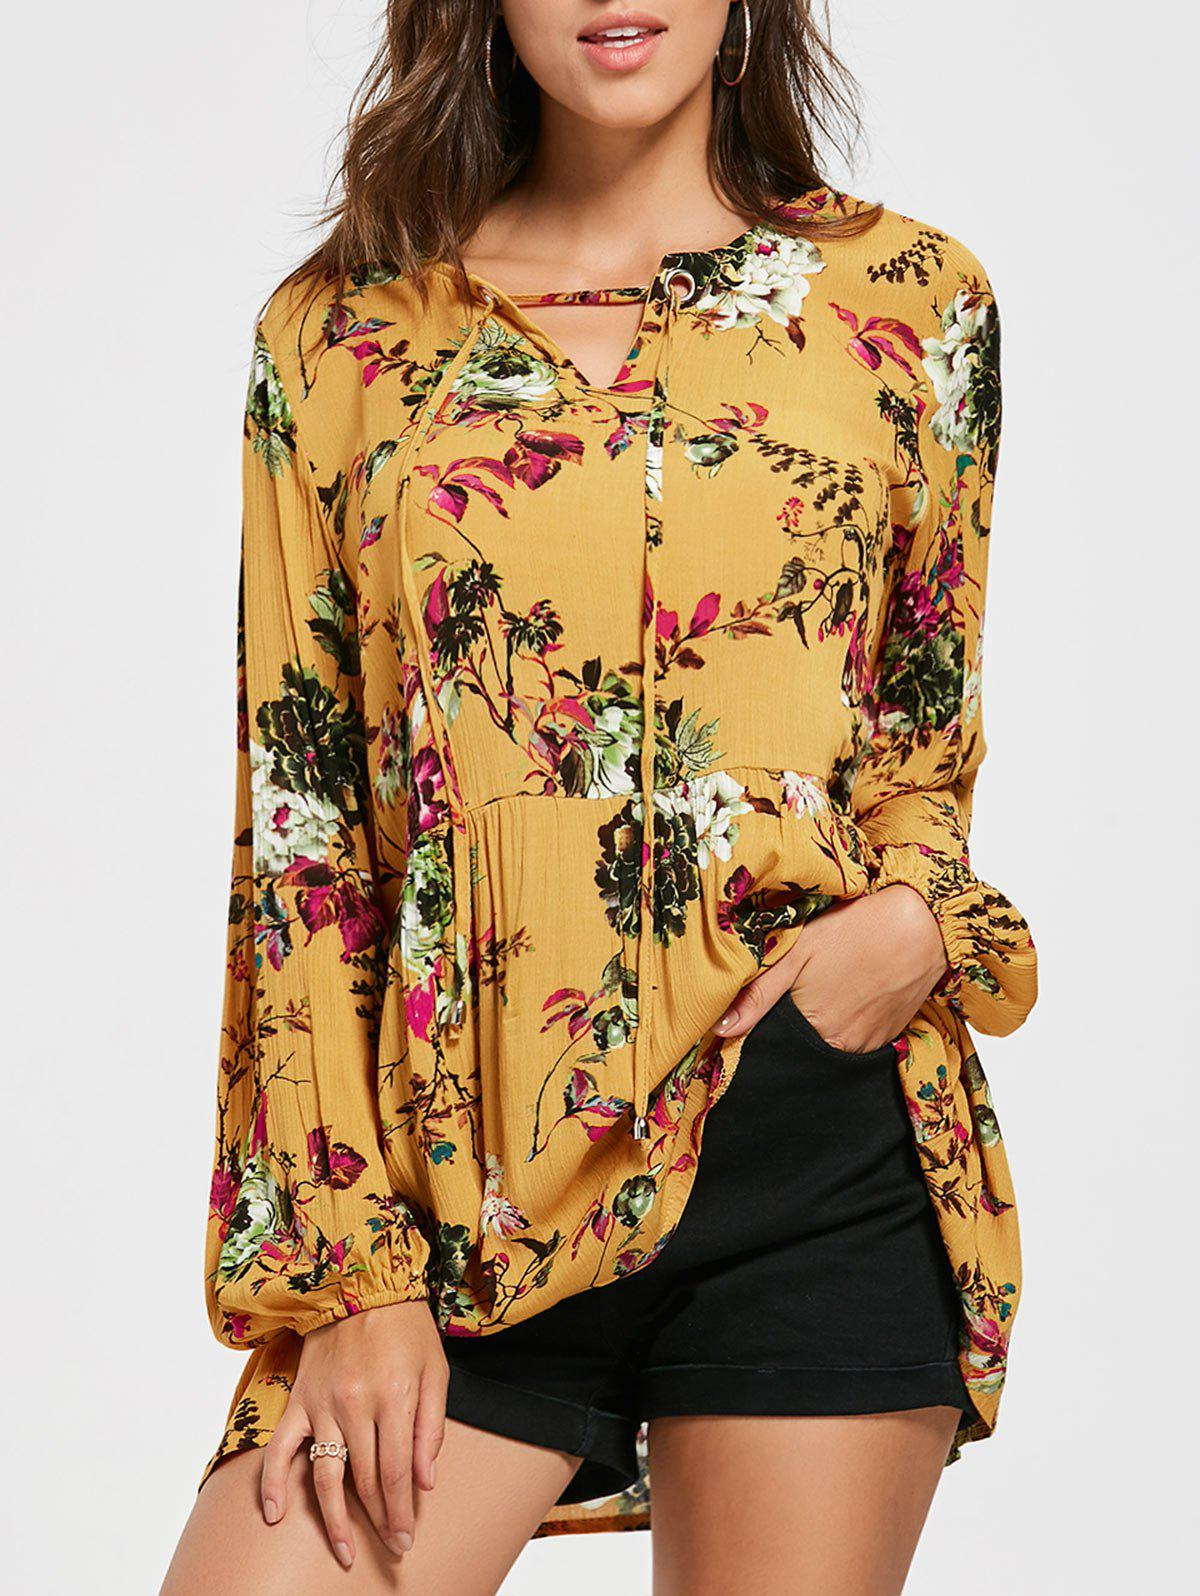 Eyelet Floral Printed Tunic Blouse - YELLOW S